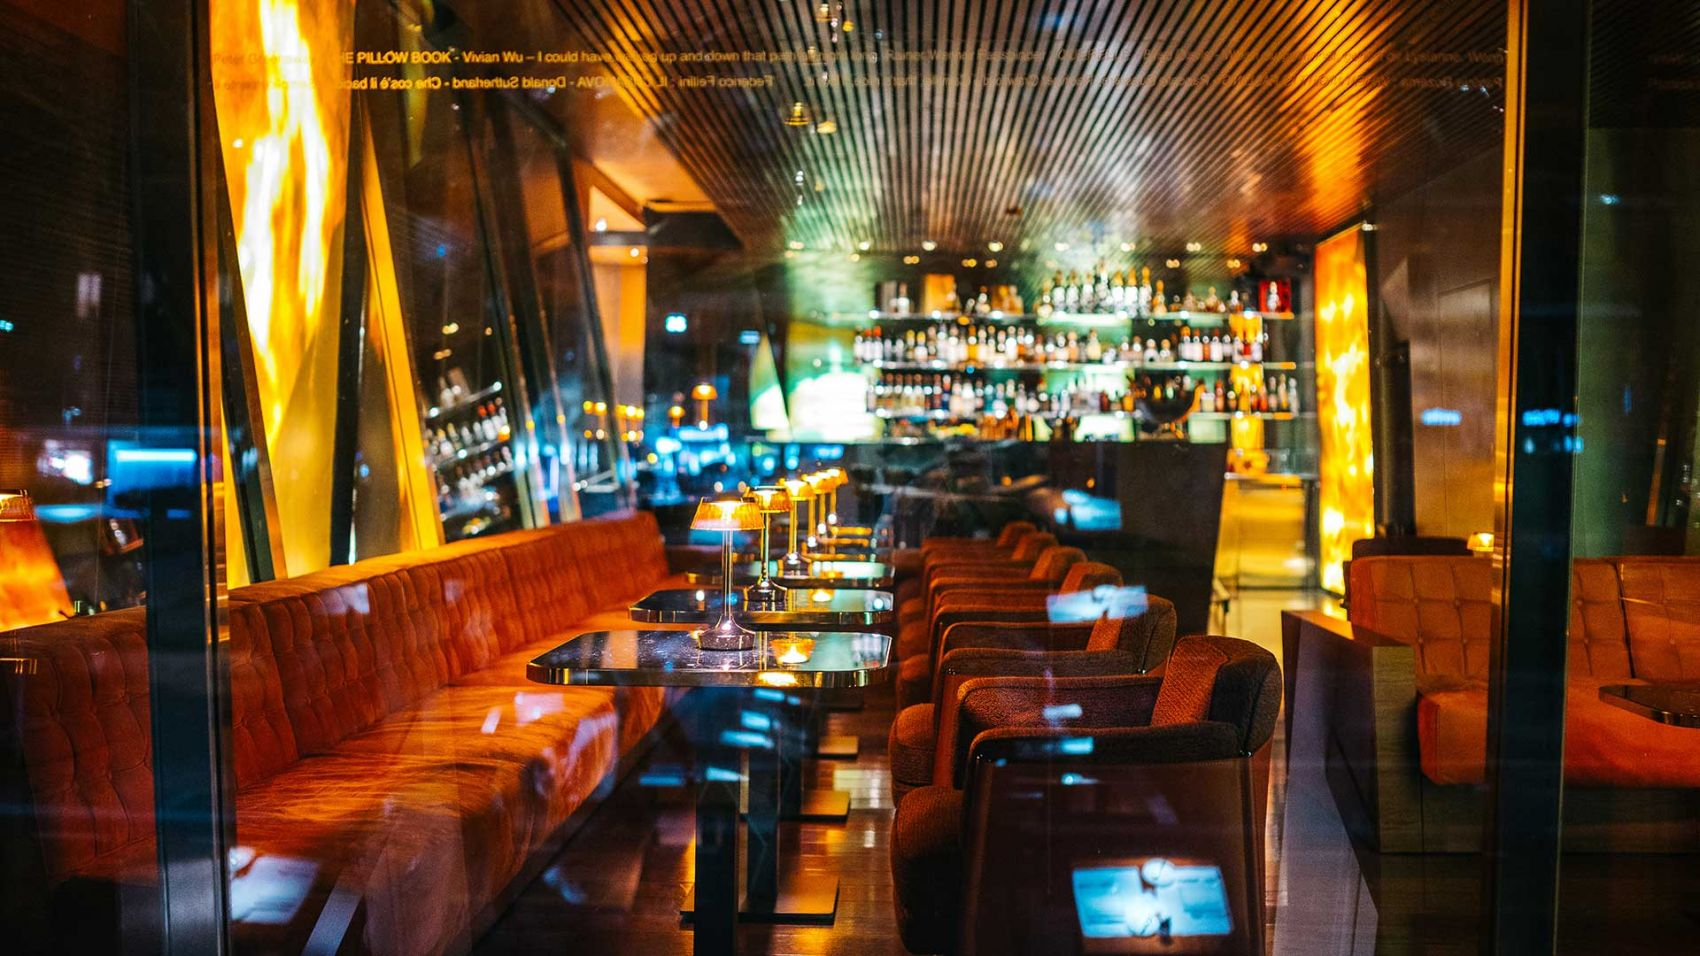 The Lounge Urban Bar Luzern